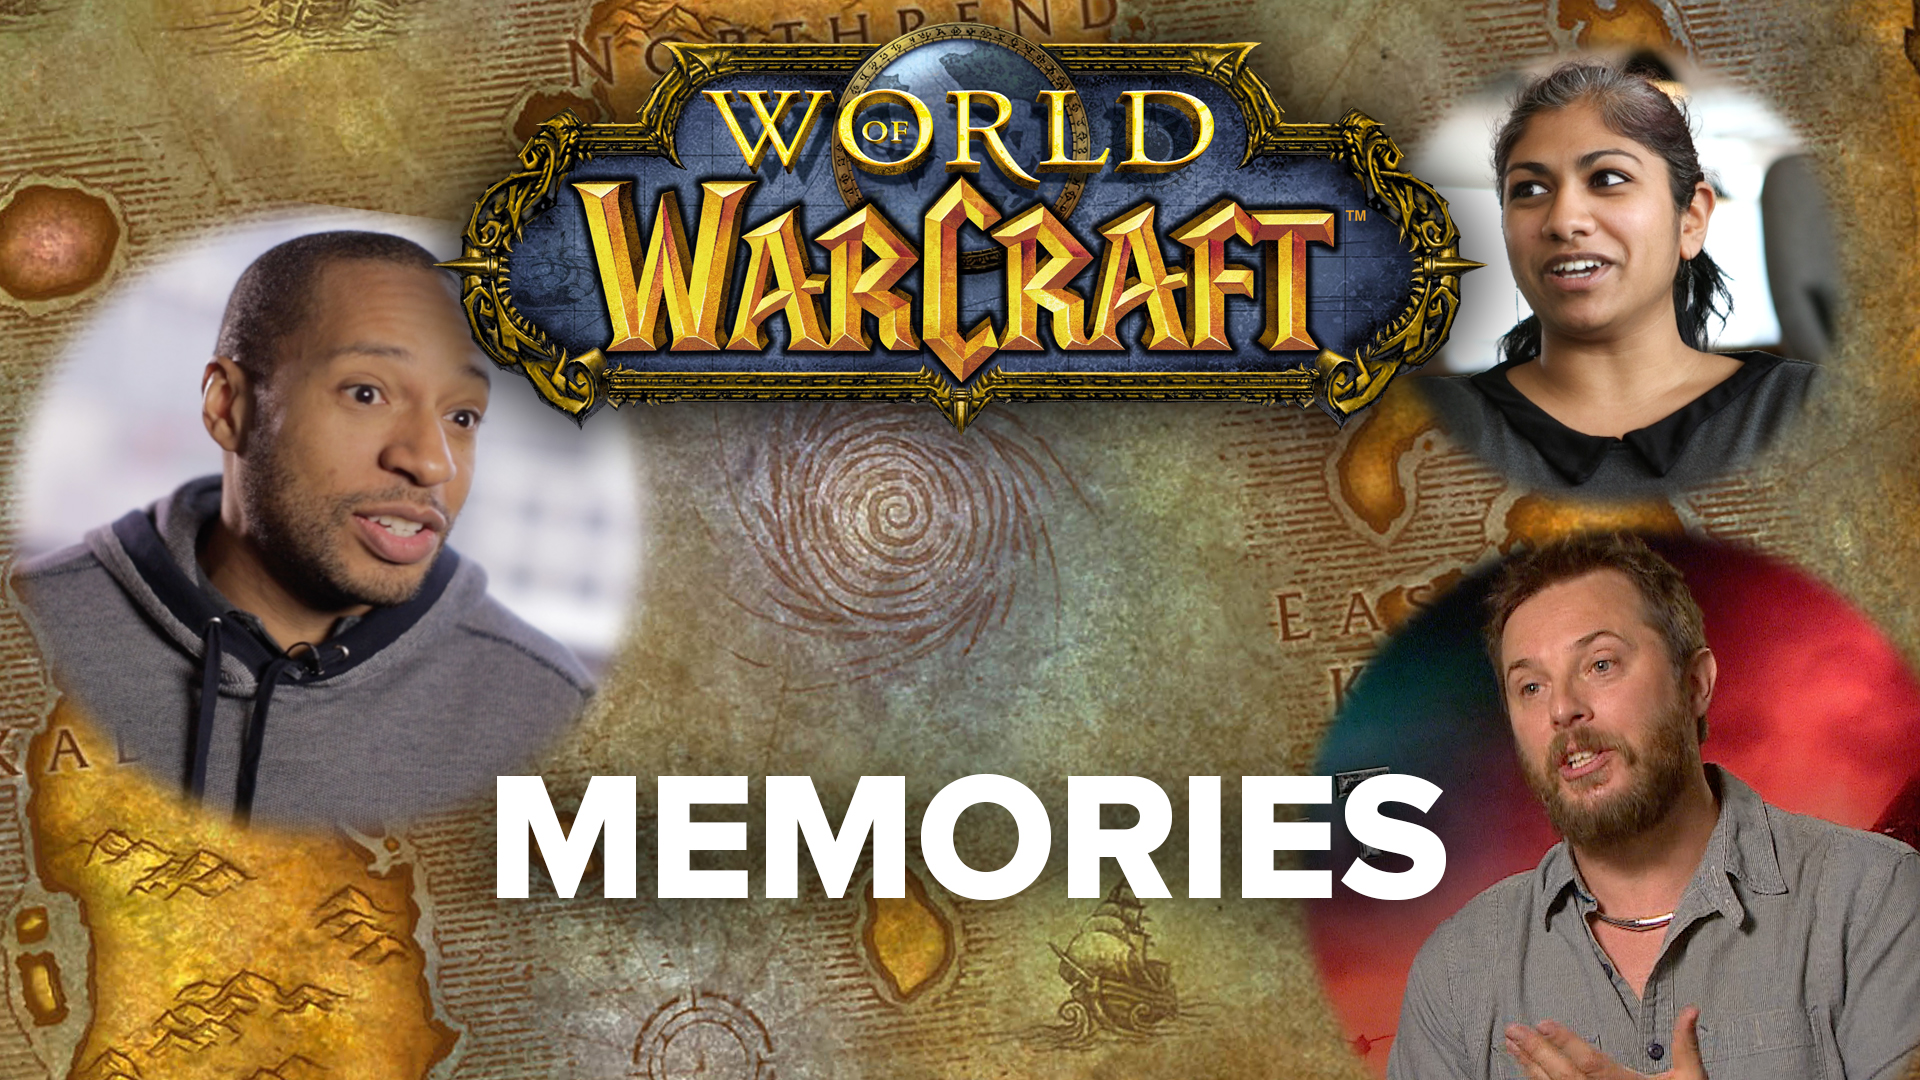 Video: 'Warcraft' director Duncan Jones and fellow fans share their WoW memories